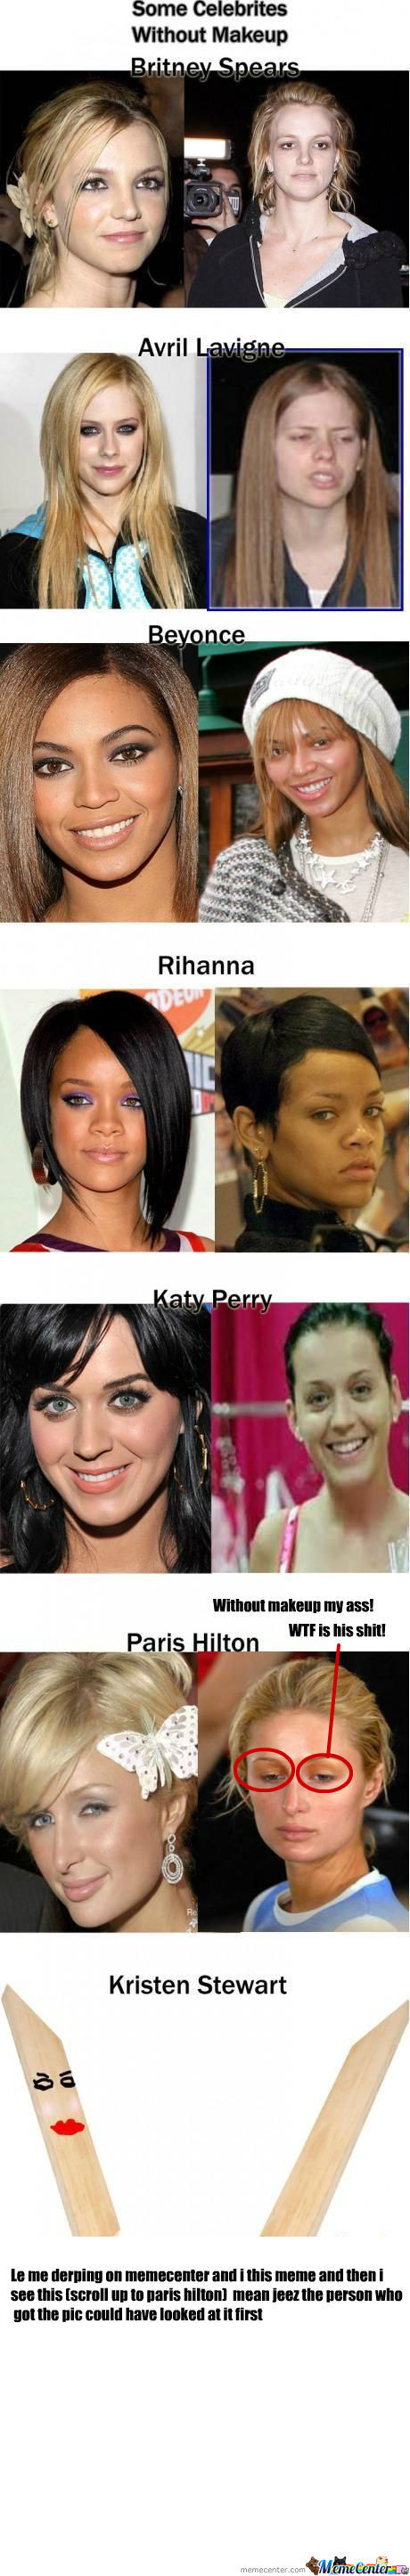 [RMX] Celebrities Without Make Up